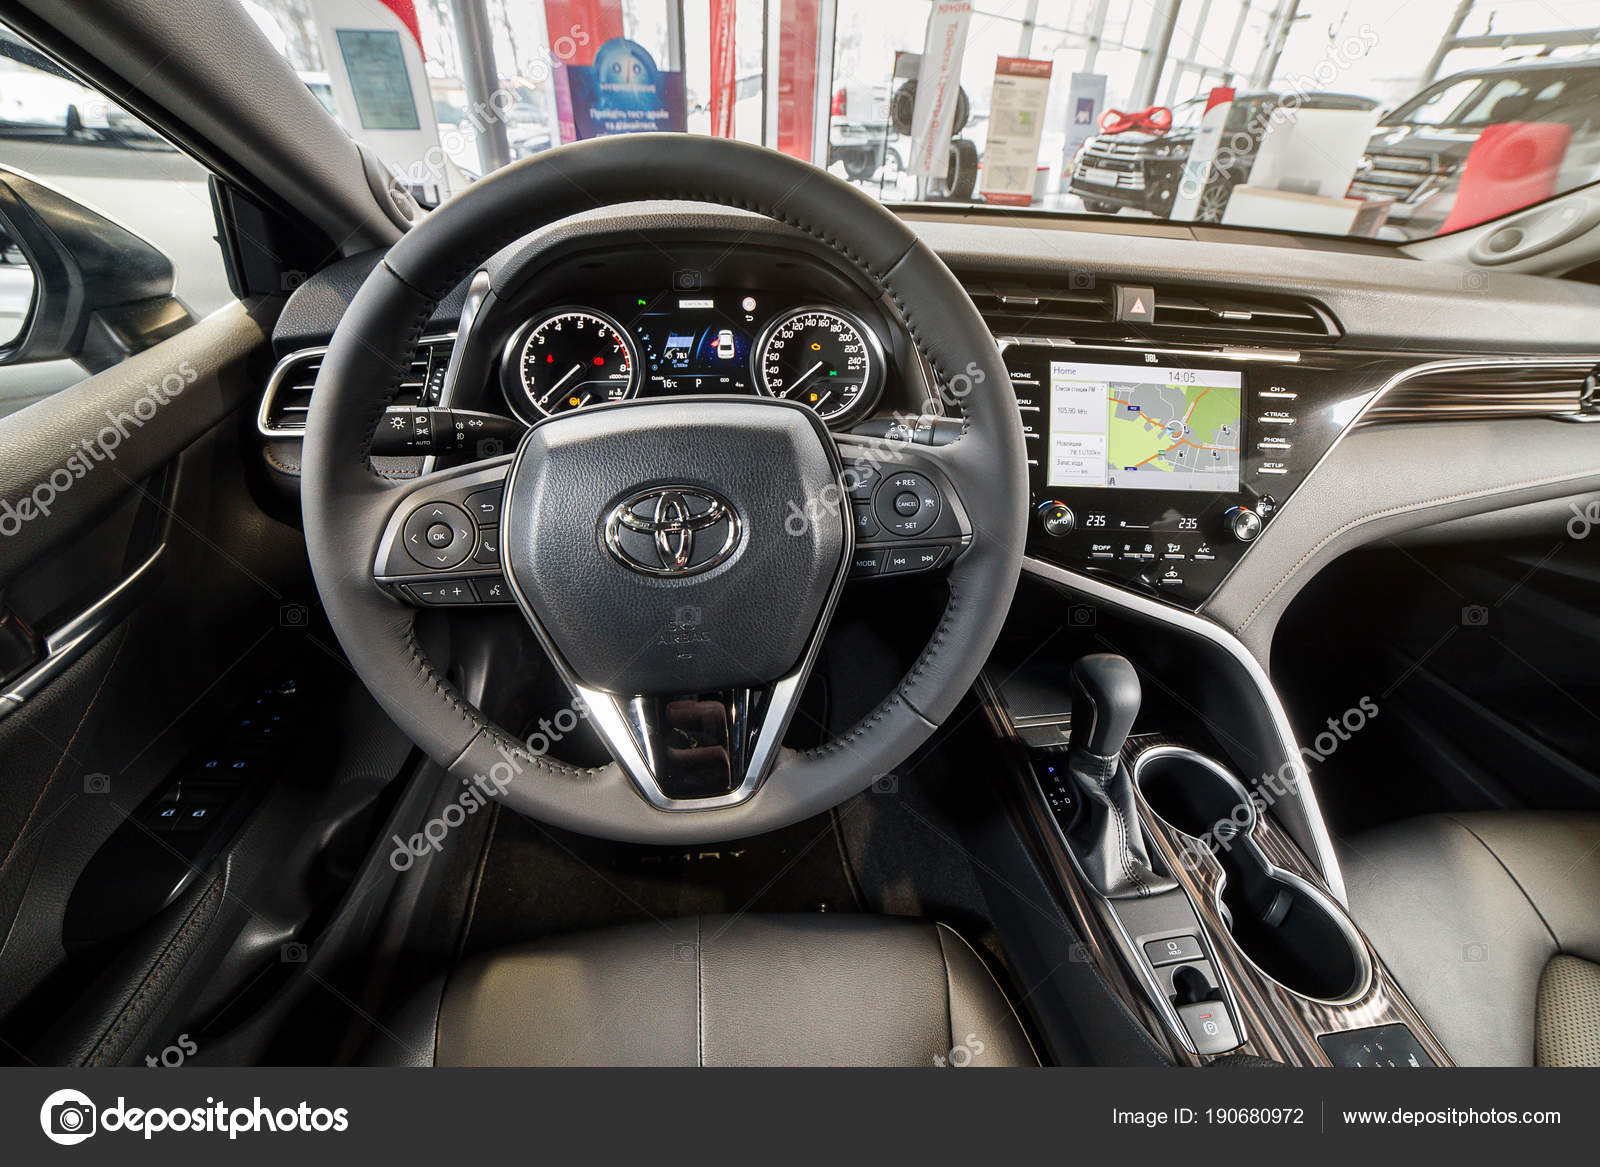 Toyota Camry 2018 Interior >> Vinnitsa Ukraine March 18 2018 Toyota Camry Concept Car